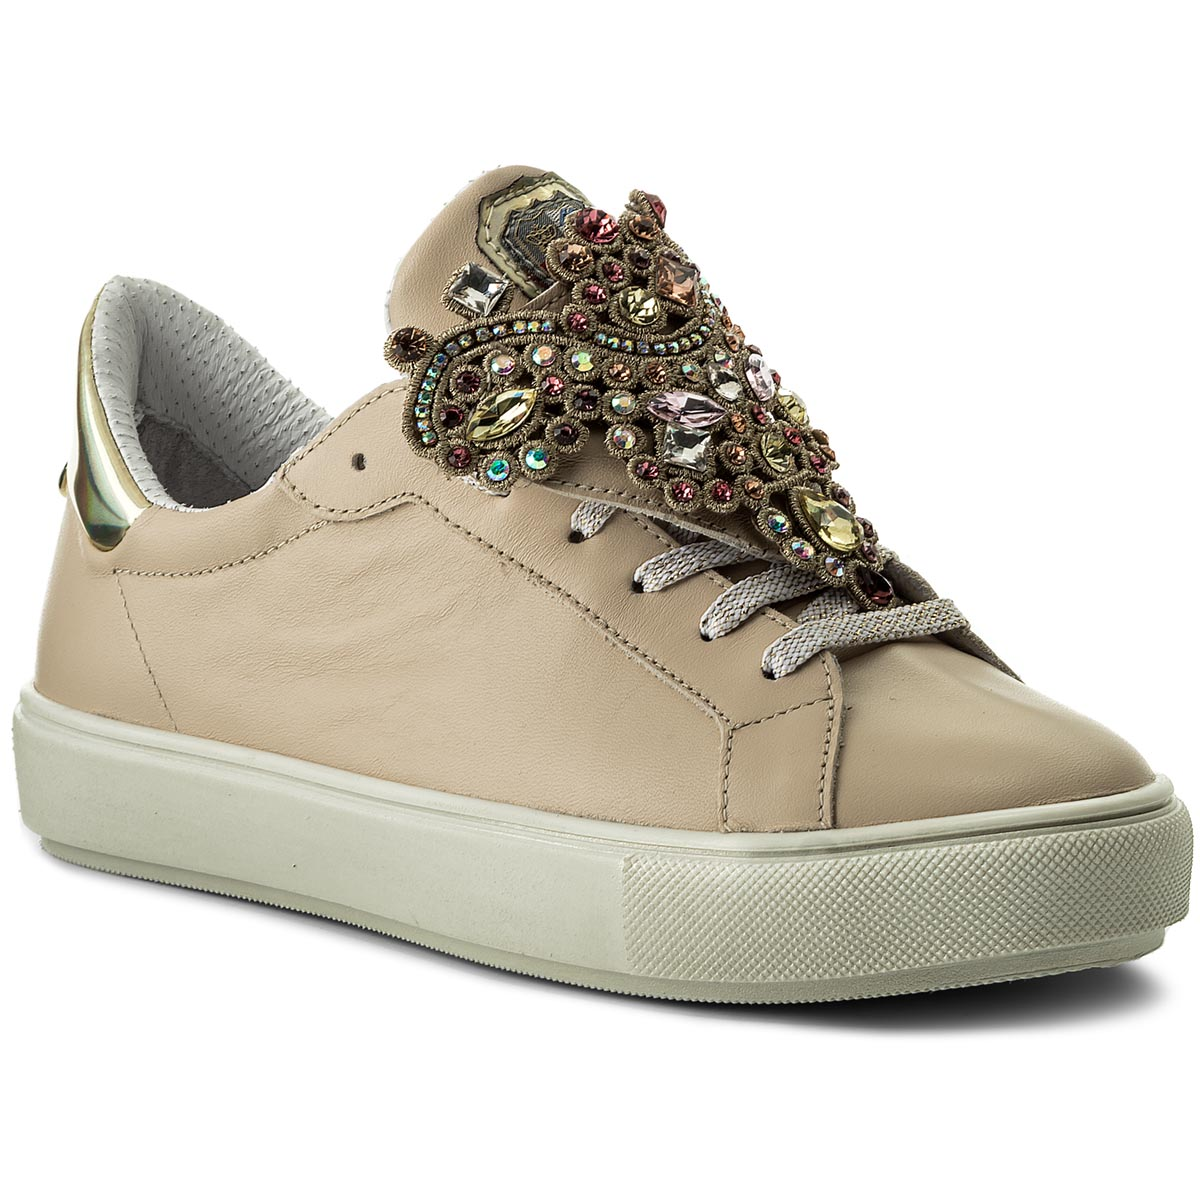 Sneakers NEW ITALIA SHOES - 1829388A/2 Beige